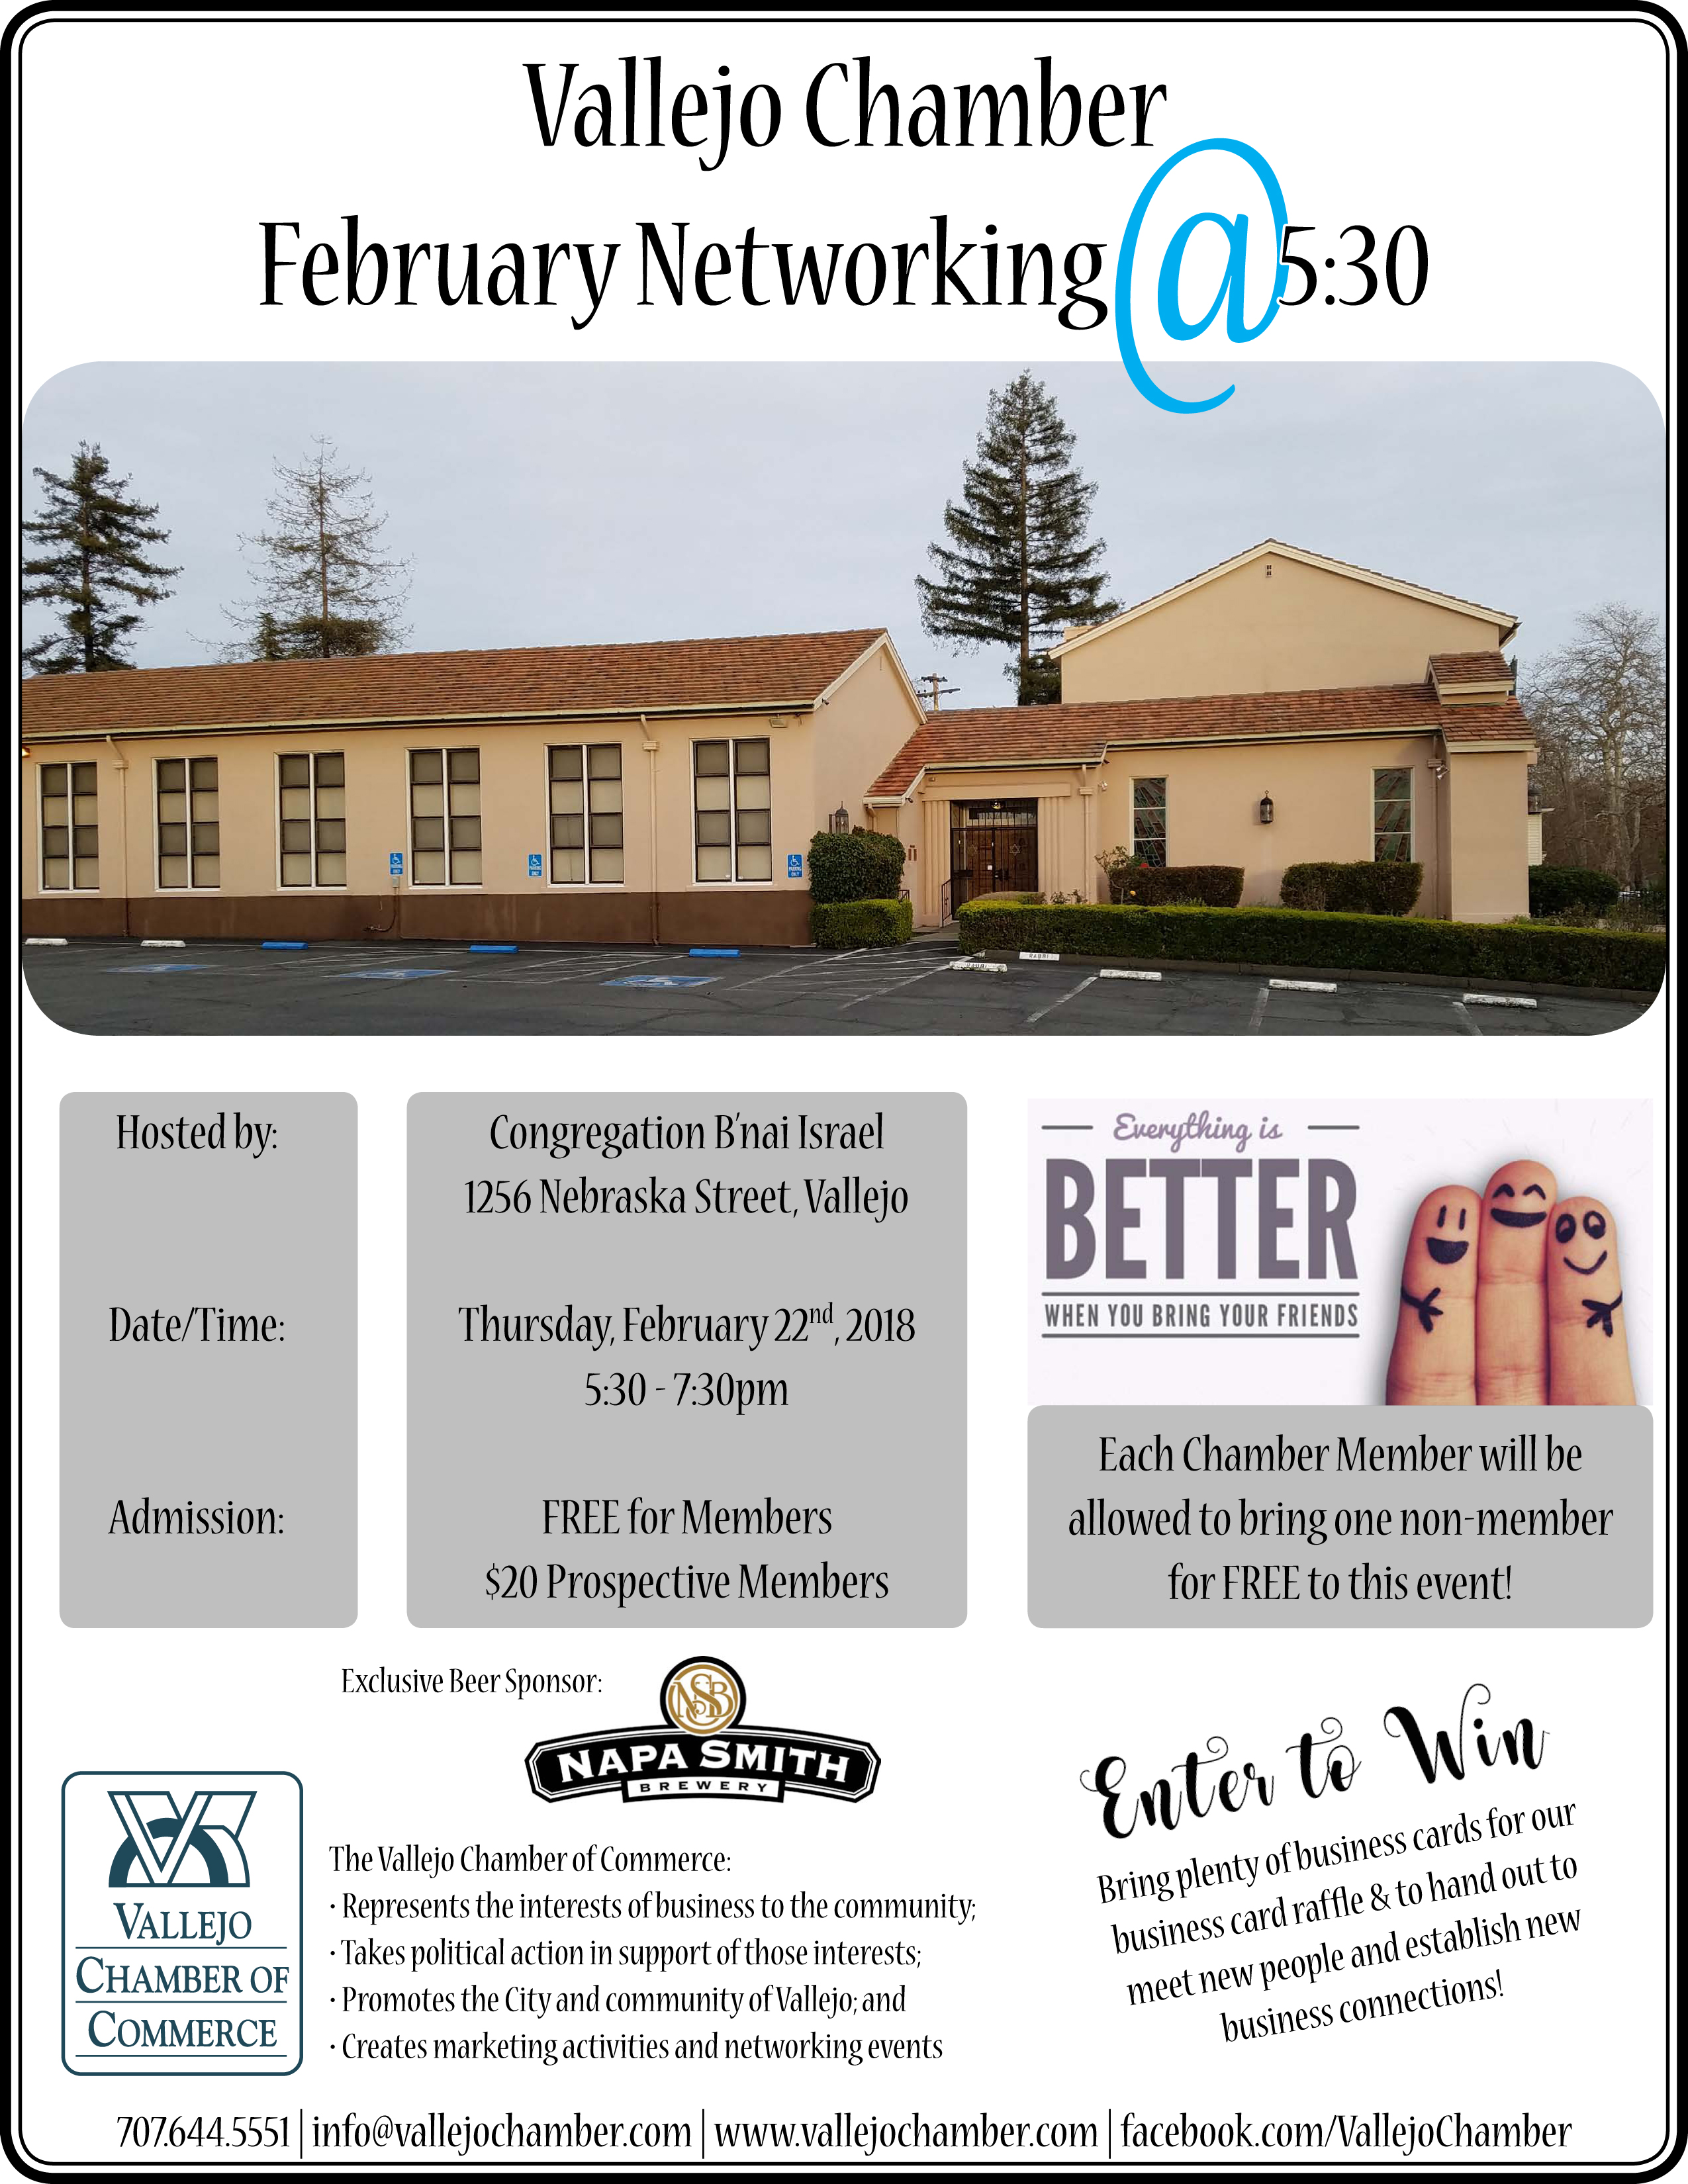 Vallejo-Chamber-February-Networking-2018